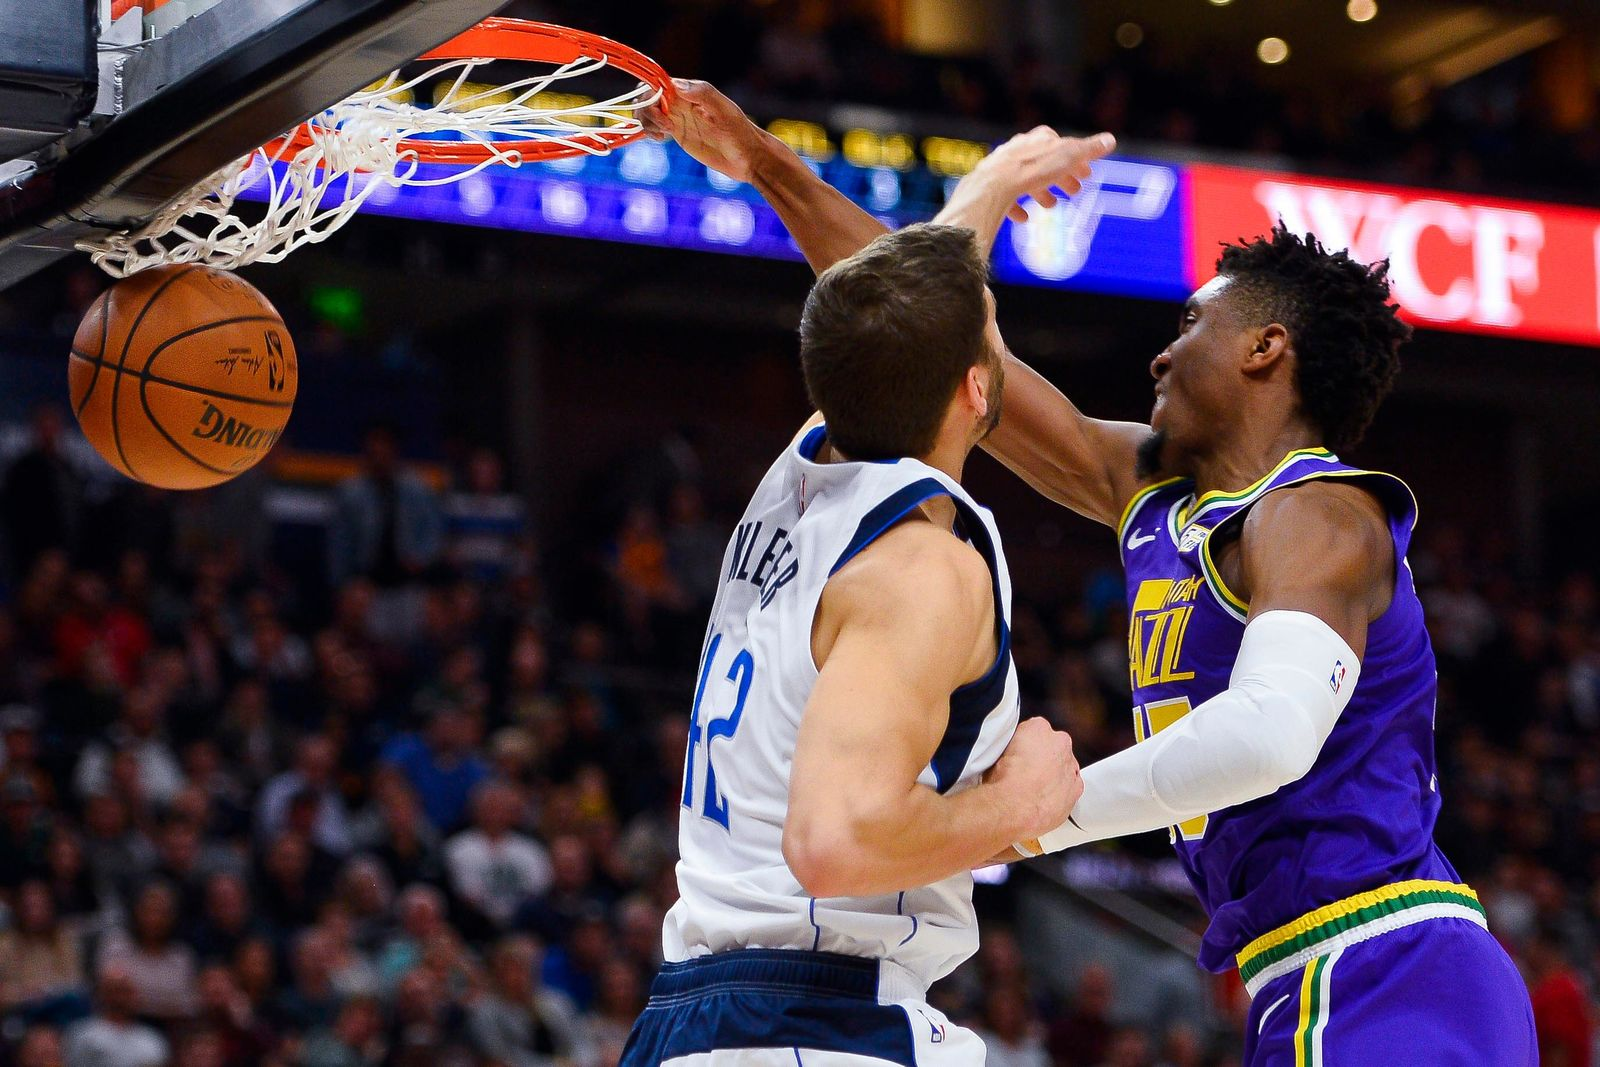 Utah Jazz guard Donovan Mitchell (45) dunks over Dallas Mavericks forward Maximilian Kleber (42) during the first half of an NBA basketball game Wednesday, Nov. 7, 2018, in Salt Lake City. (AP Photo/Alex Goodlett)